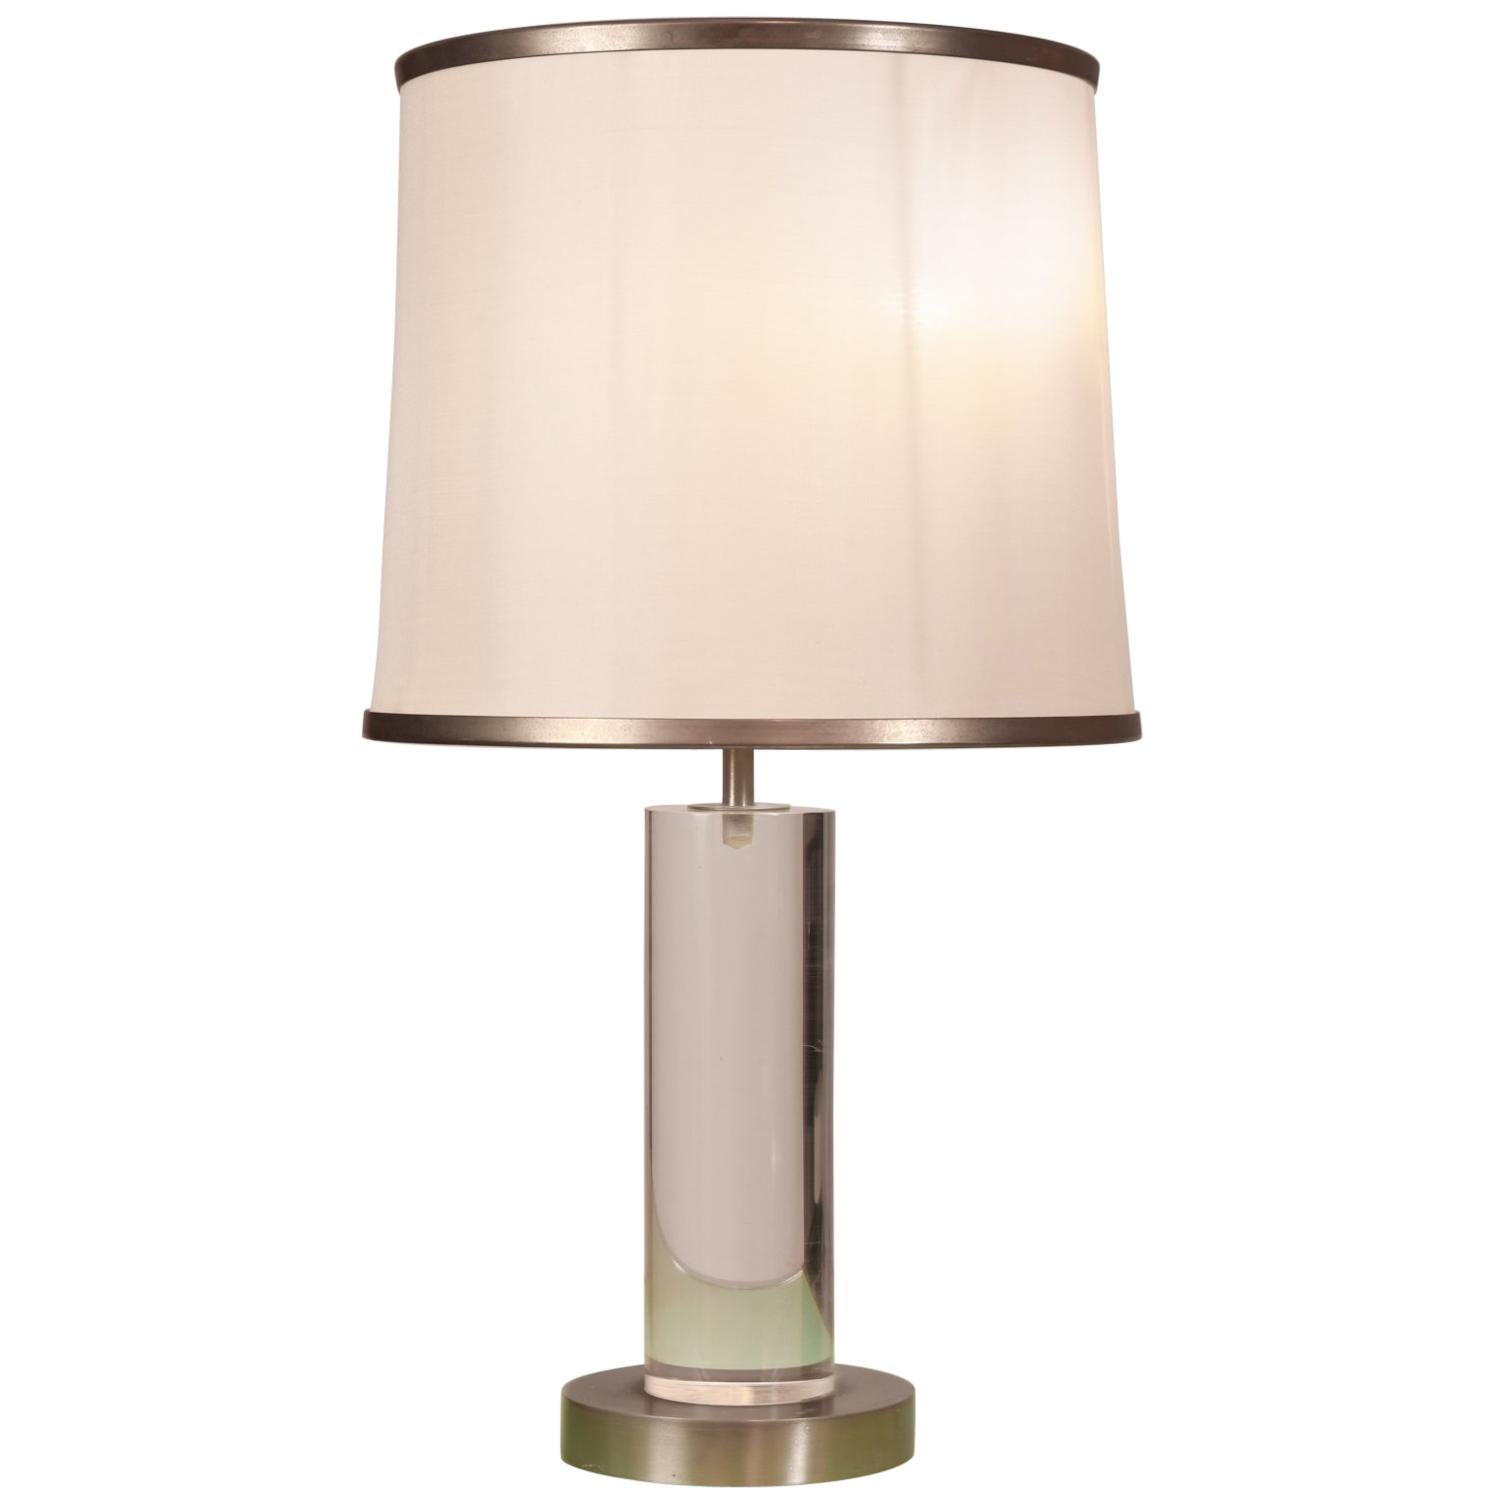 Romeo Rega Table Lamp in Lucite and Nickel